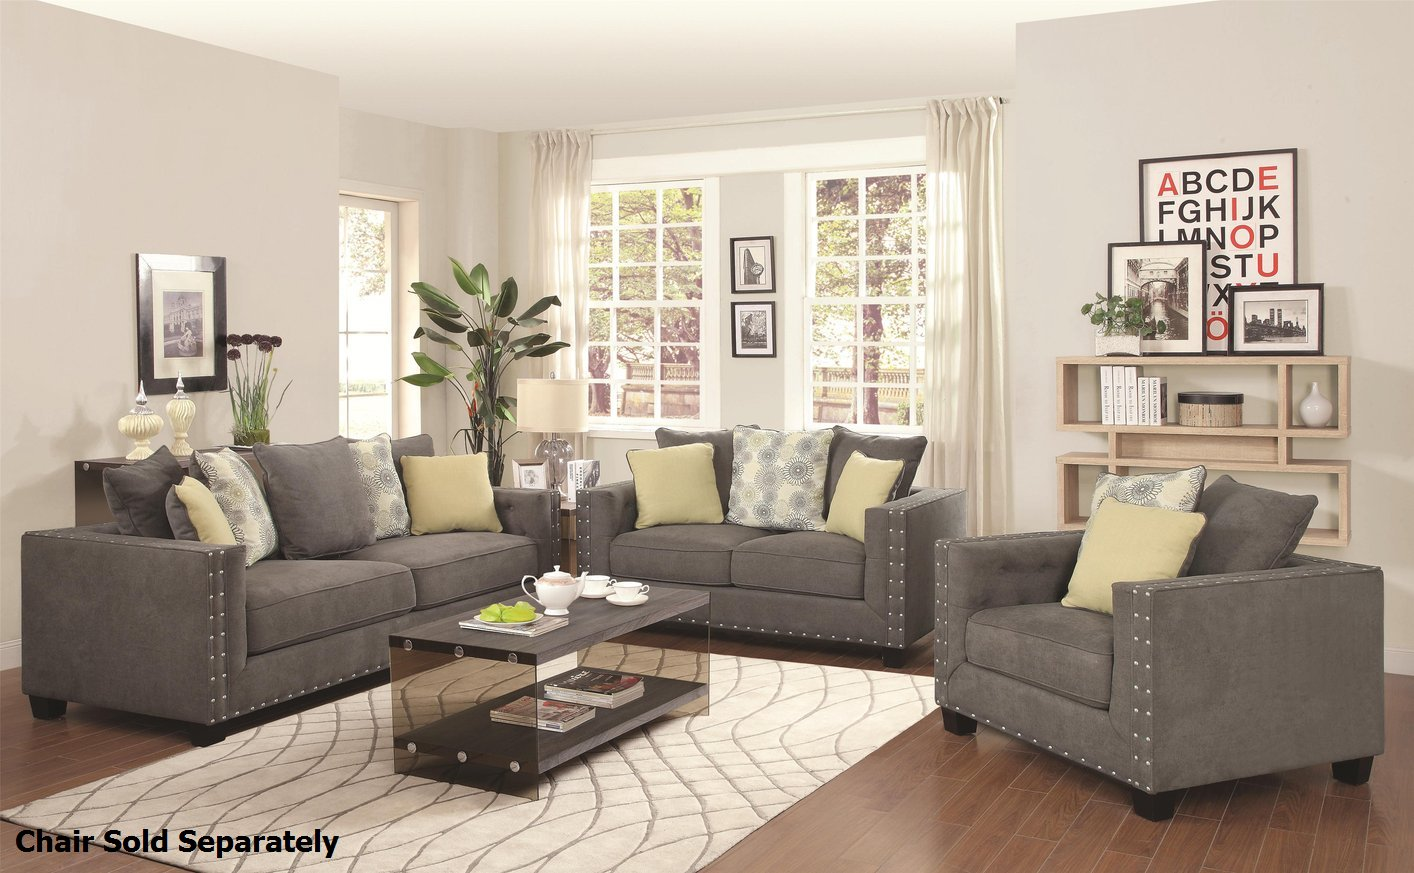 Kelvington Grey Fabric Reclining Sofa and Loveseat Set - Steal-A-Sofa  Furniture Outlet Los Angeles CA